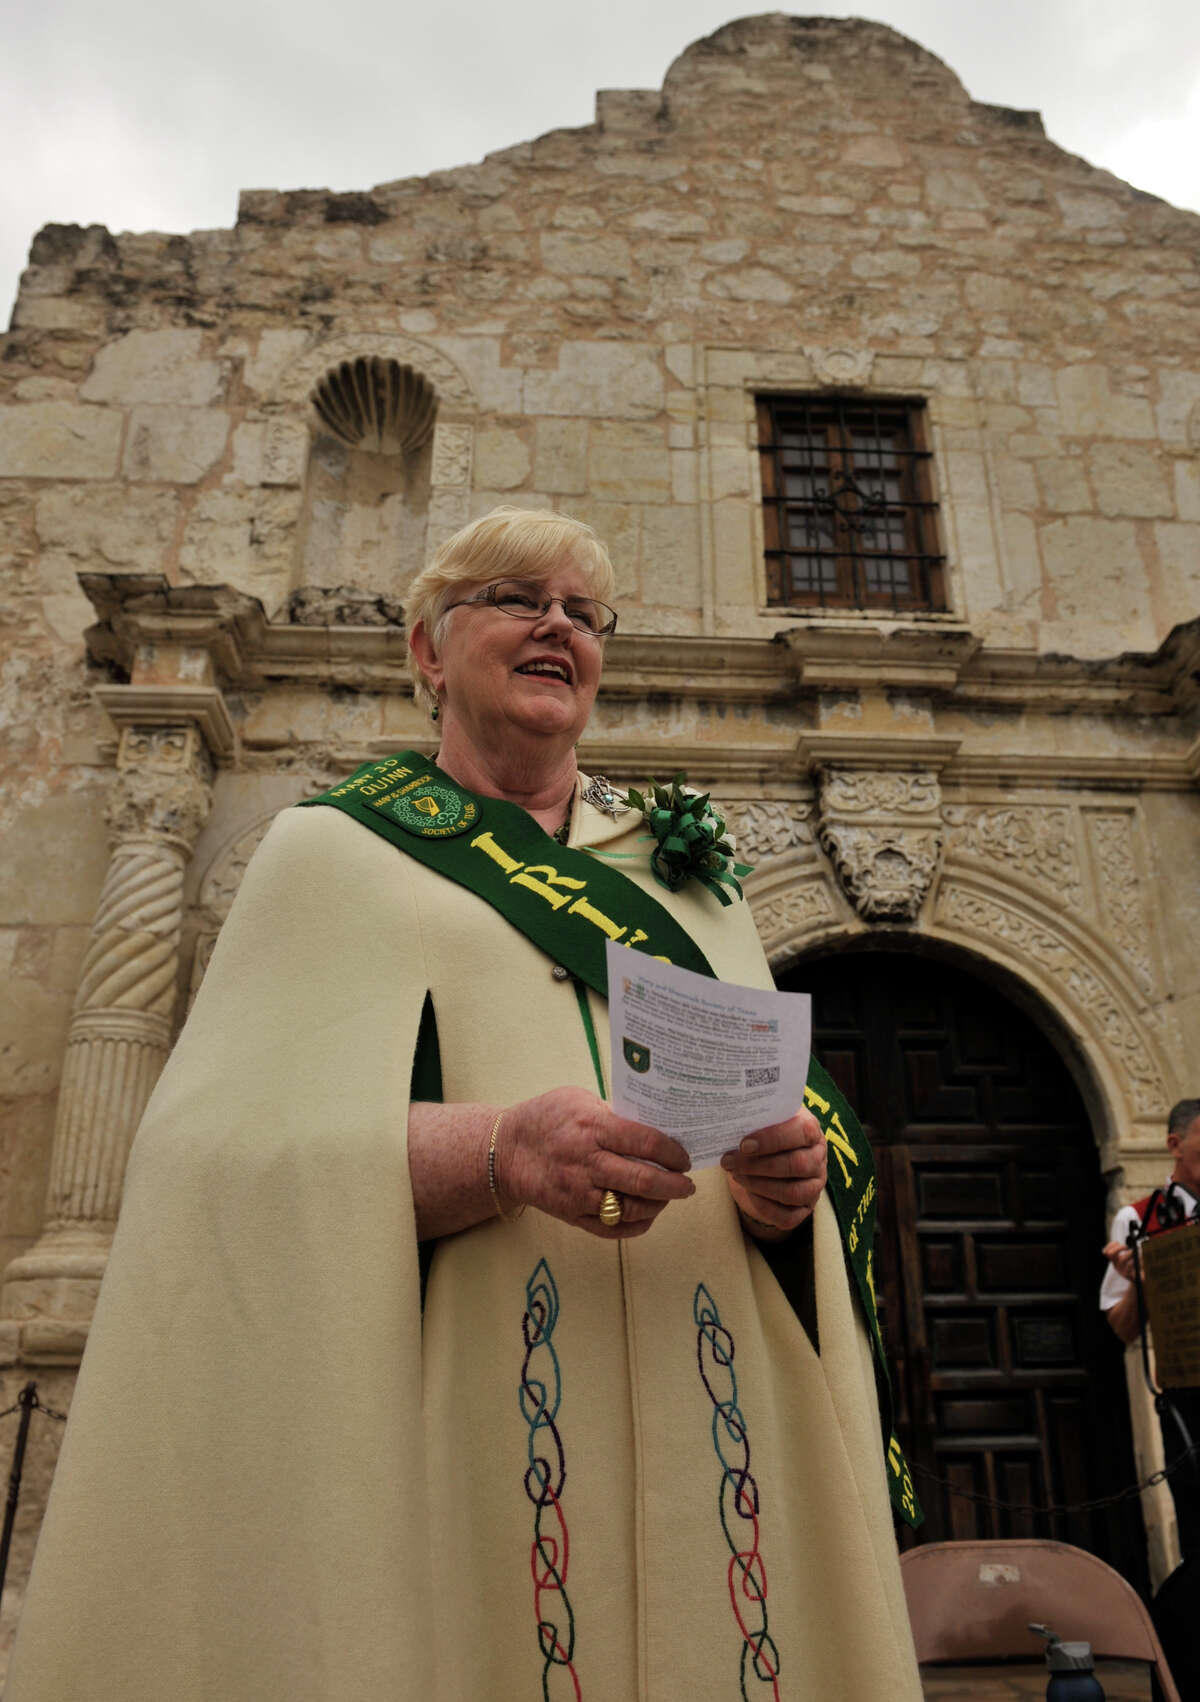 Irishman of the Year Mary Jo Quinn waits for the beginning of a ceremony Sunday, March 17, 2013, to honor Irishman who died during the Battle of the Alamo.